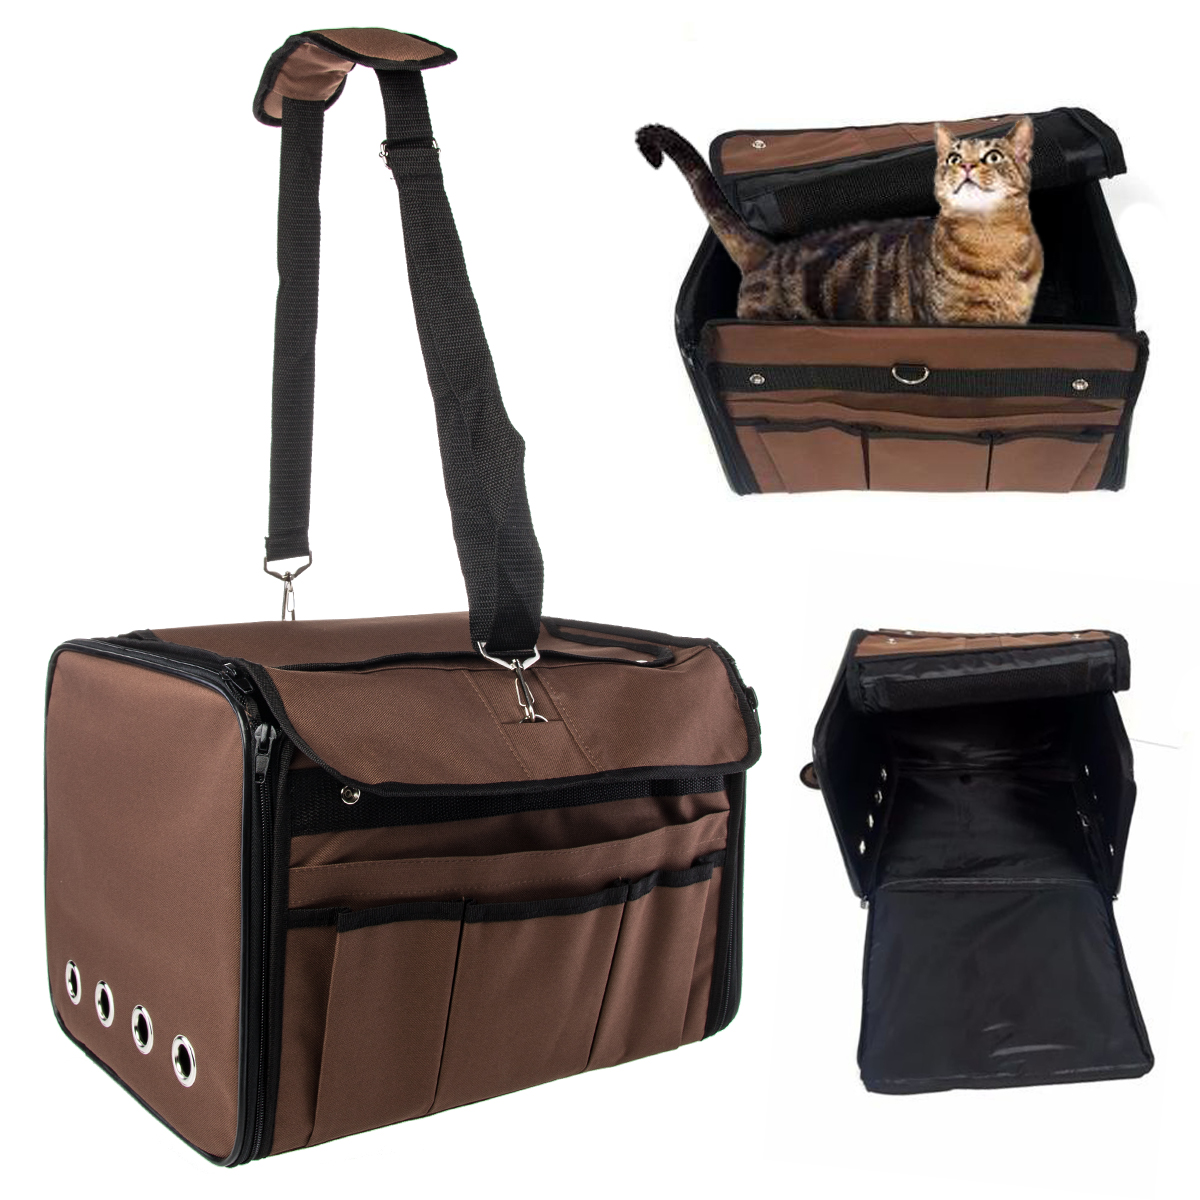 Pet Carrier Travel Bag Small Dogs Cats Airline Approved Animal Crate Under Seat